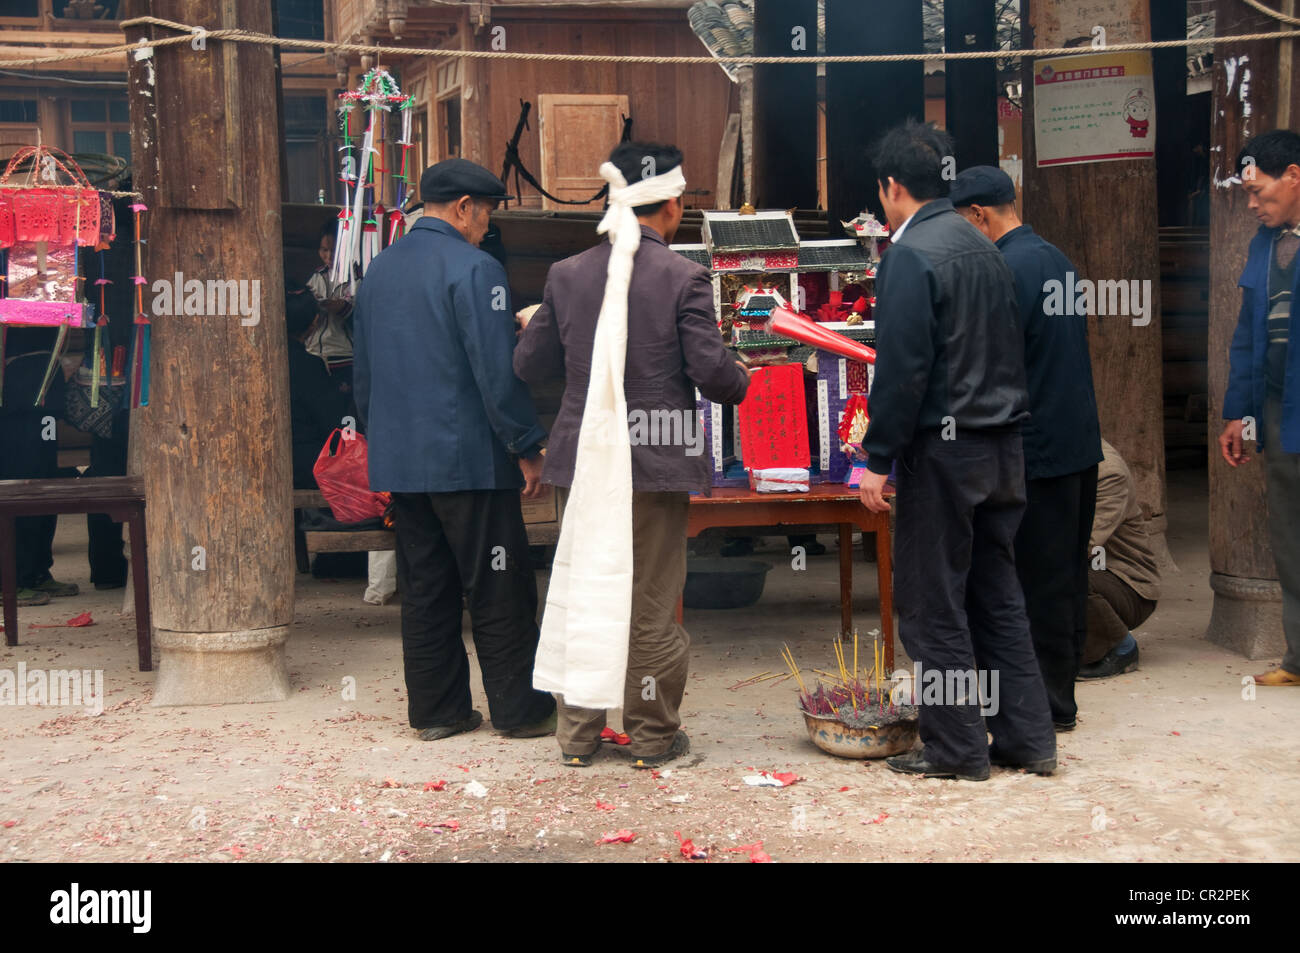 Men making offerings during a funeral rite, Zhaoxing Dong Village, Southern China Stock Photo